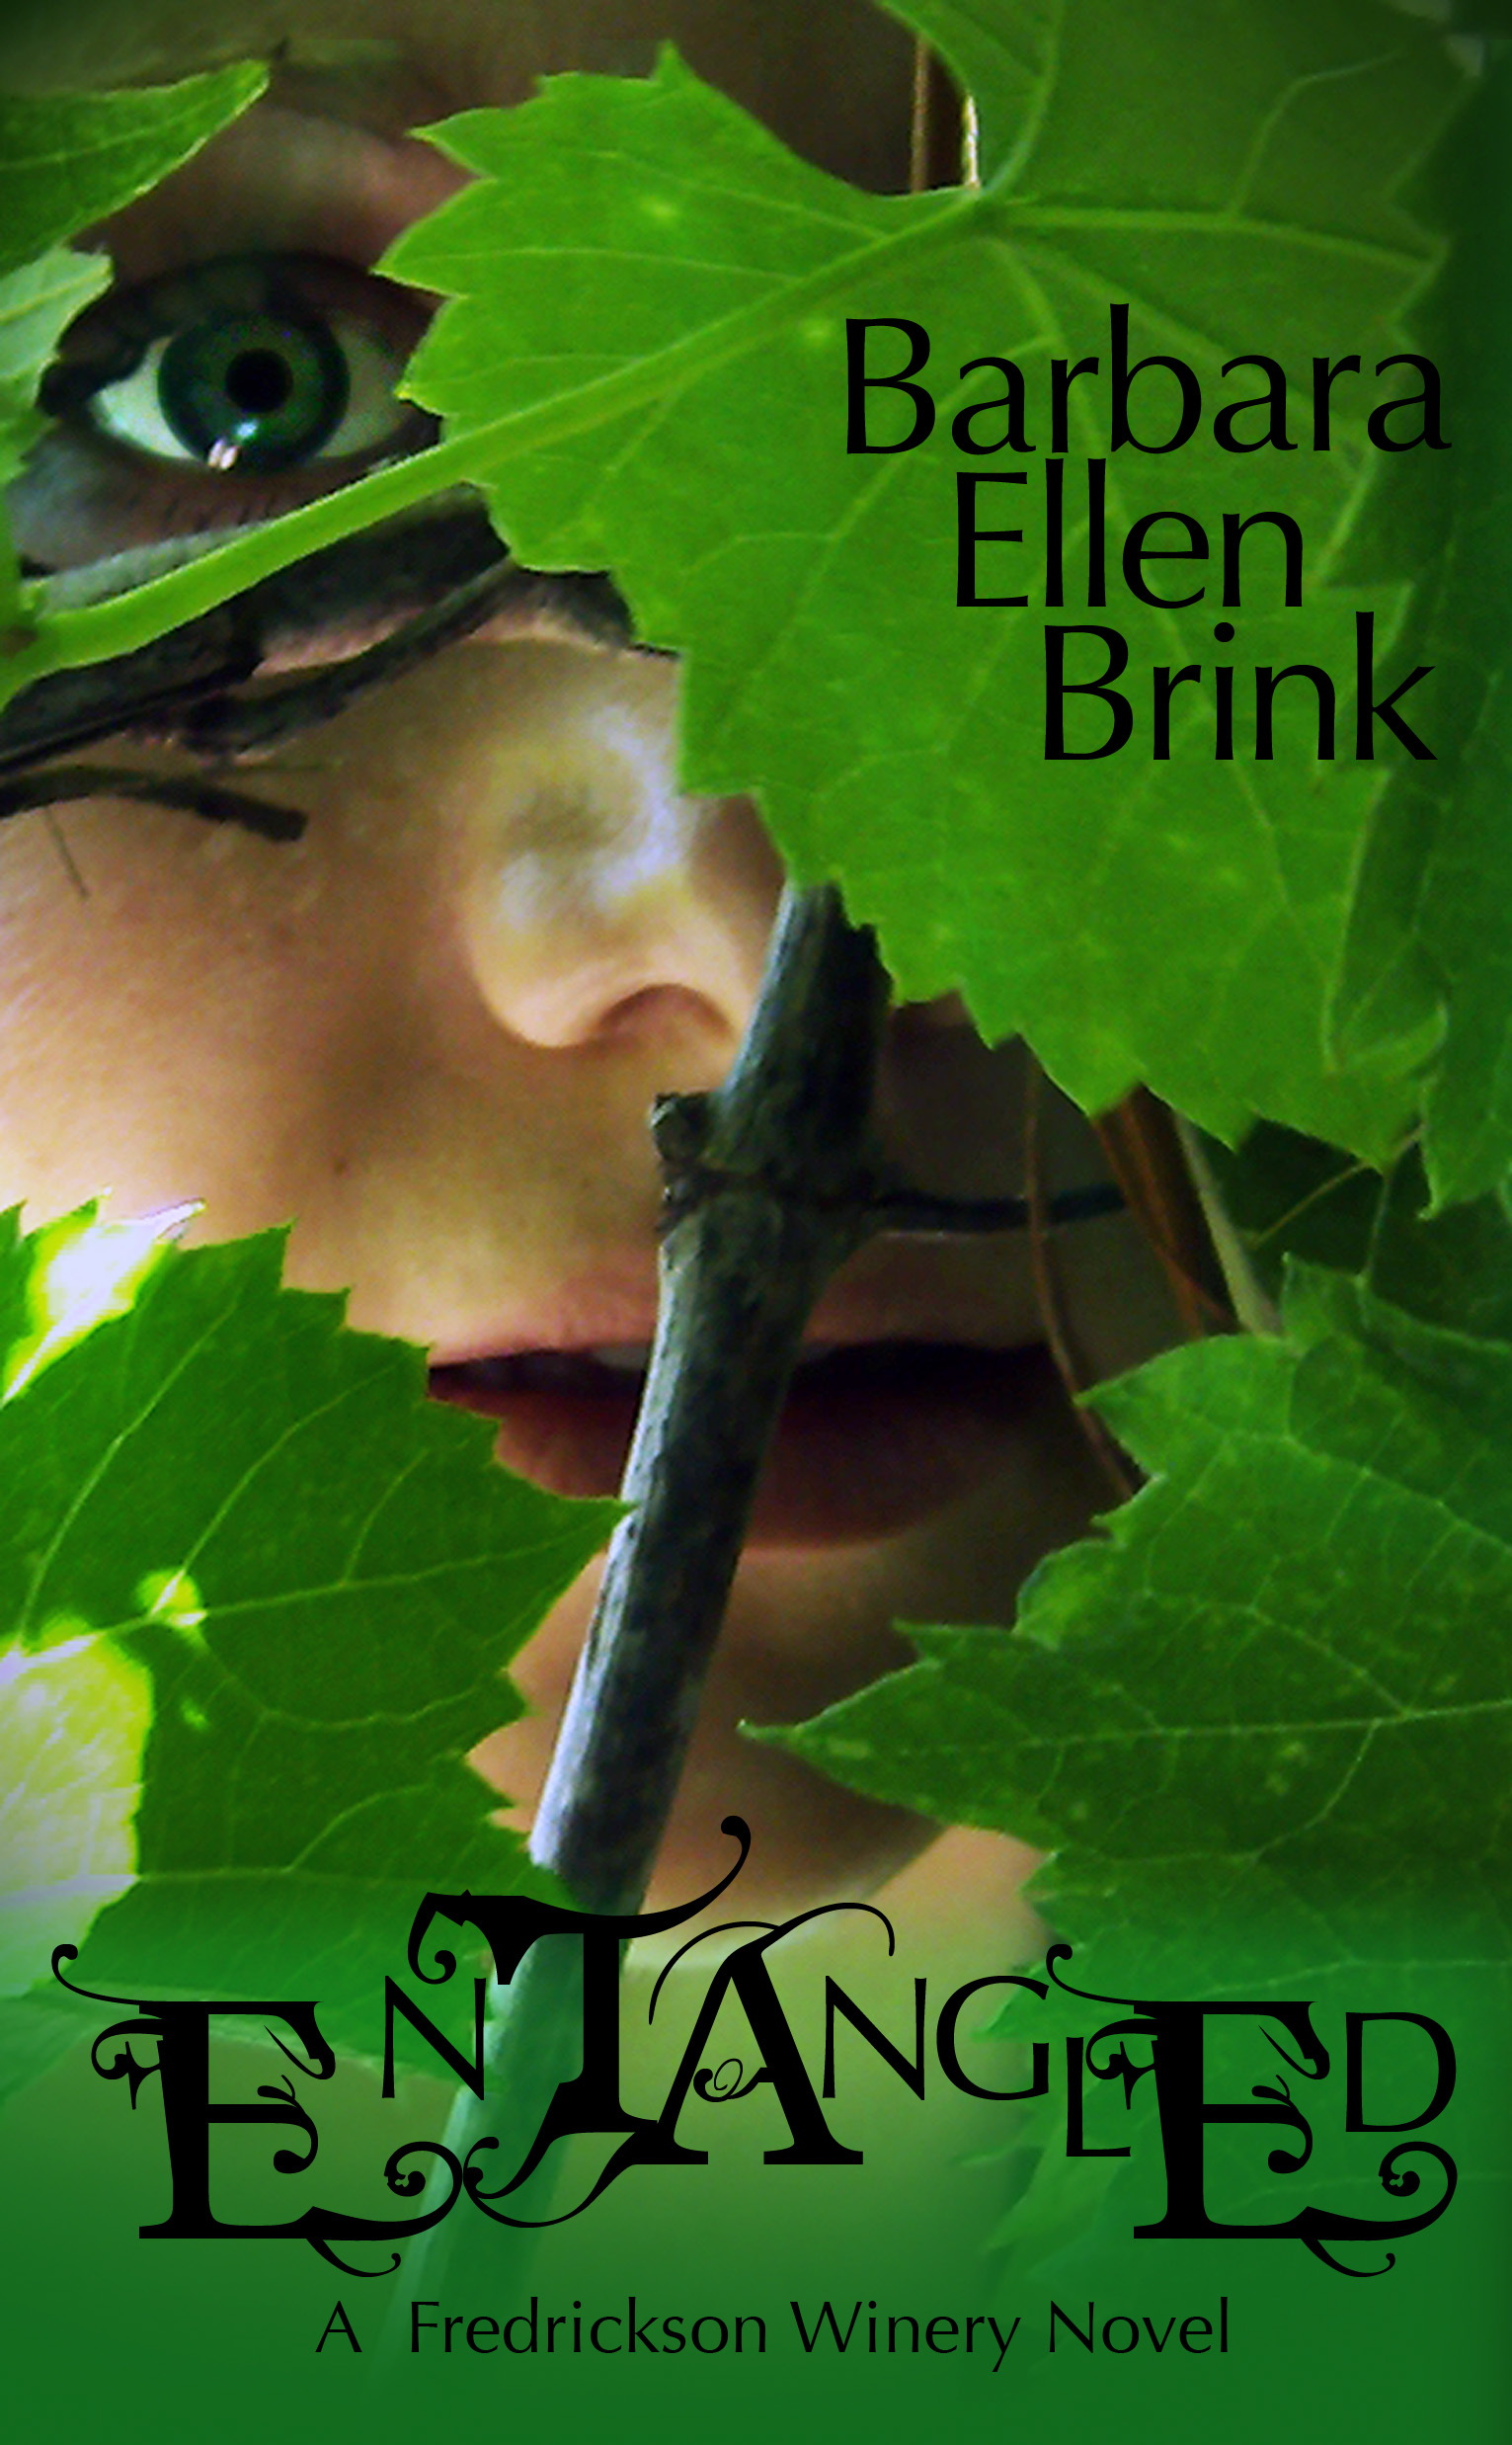 Entangled (Book 1 The Fredrickson Winery Novels)